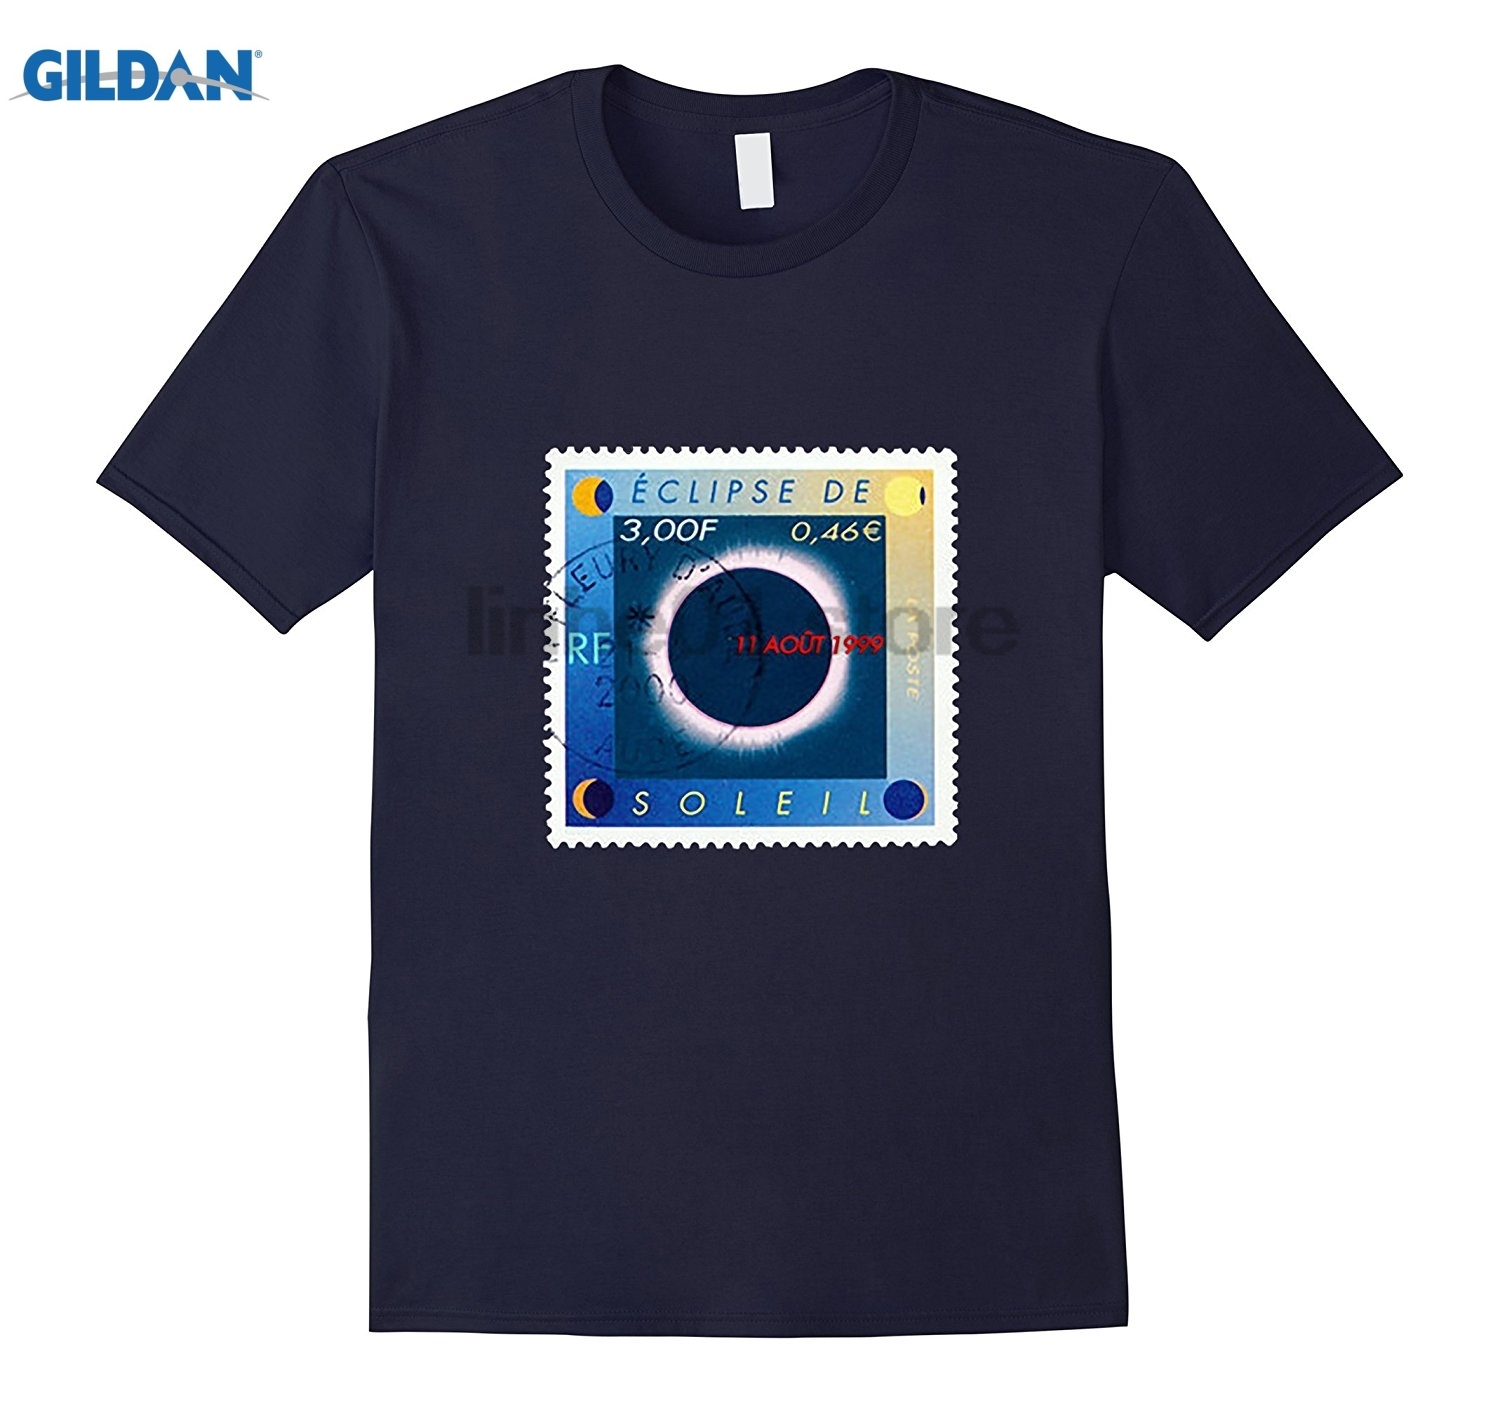 GILDAN Eclipse De Soleil Shirt, Solar Eclipse, Stamp Collector sunglasses women T-shirt